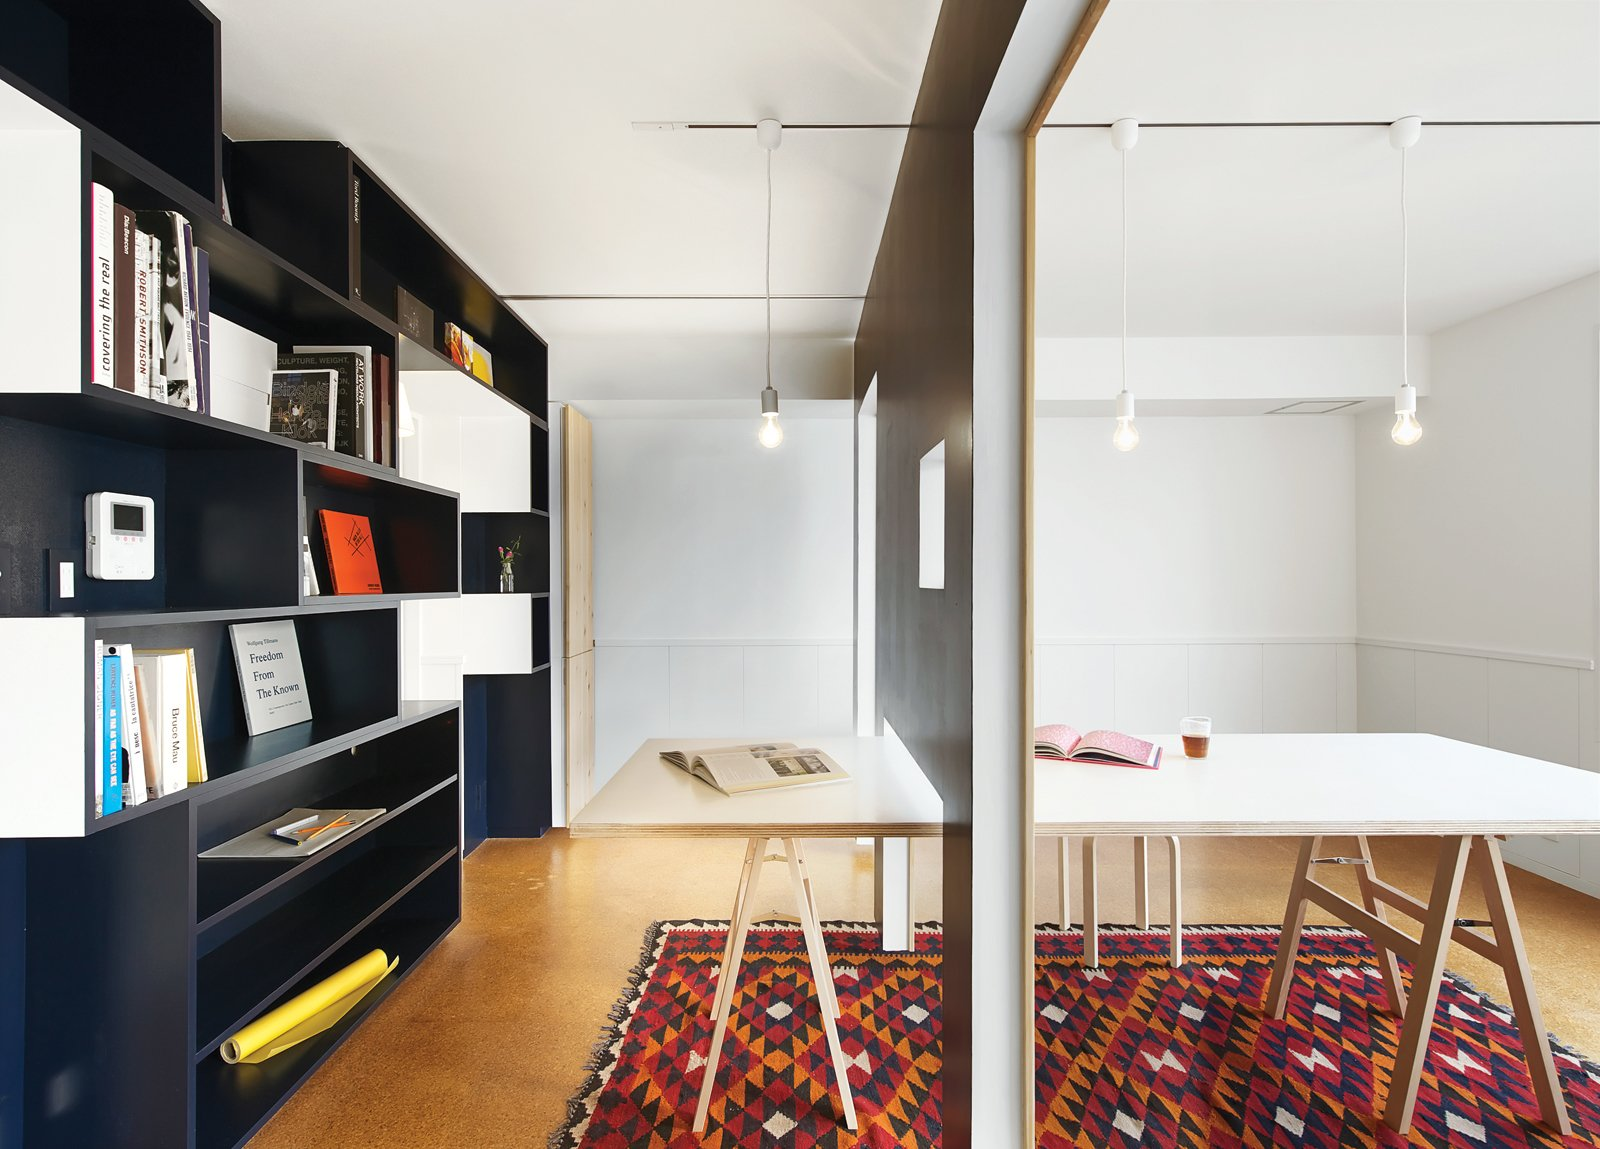 A movable wall clad in wainscoting on one side slides along tracks in the dining-room ceiling, dividing the room into a meeting space and a library. The Shiro Simple Modern Pendant lights can be easily removed and reattached after moving the wall. Tagged: Office, Study, Medium Hardwood Floor, and Desk.  30+ Modern Homes With Libraries by Matthew Keeshin